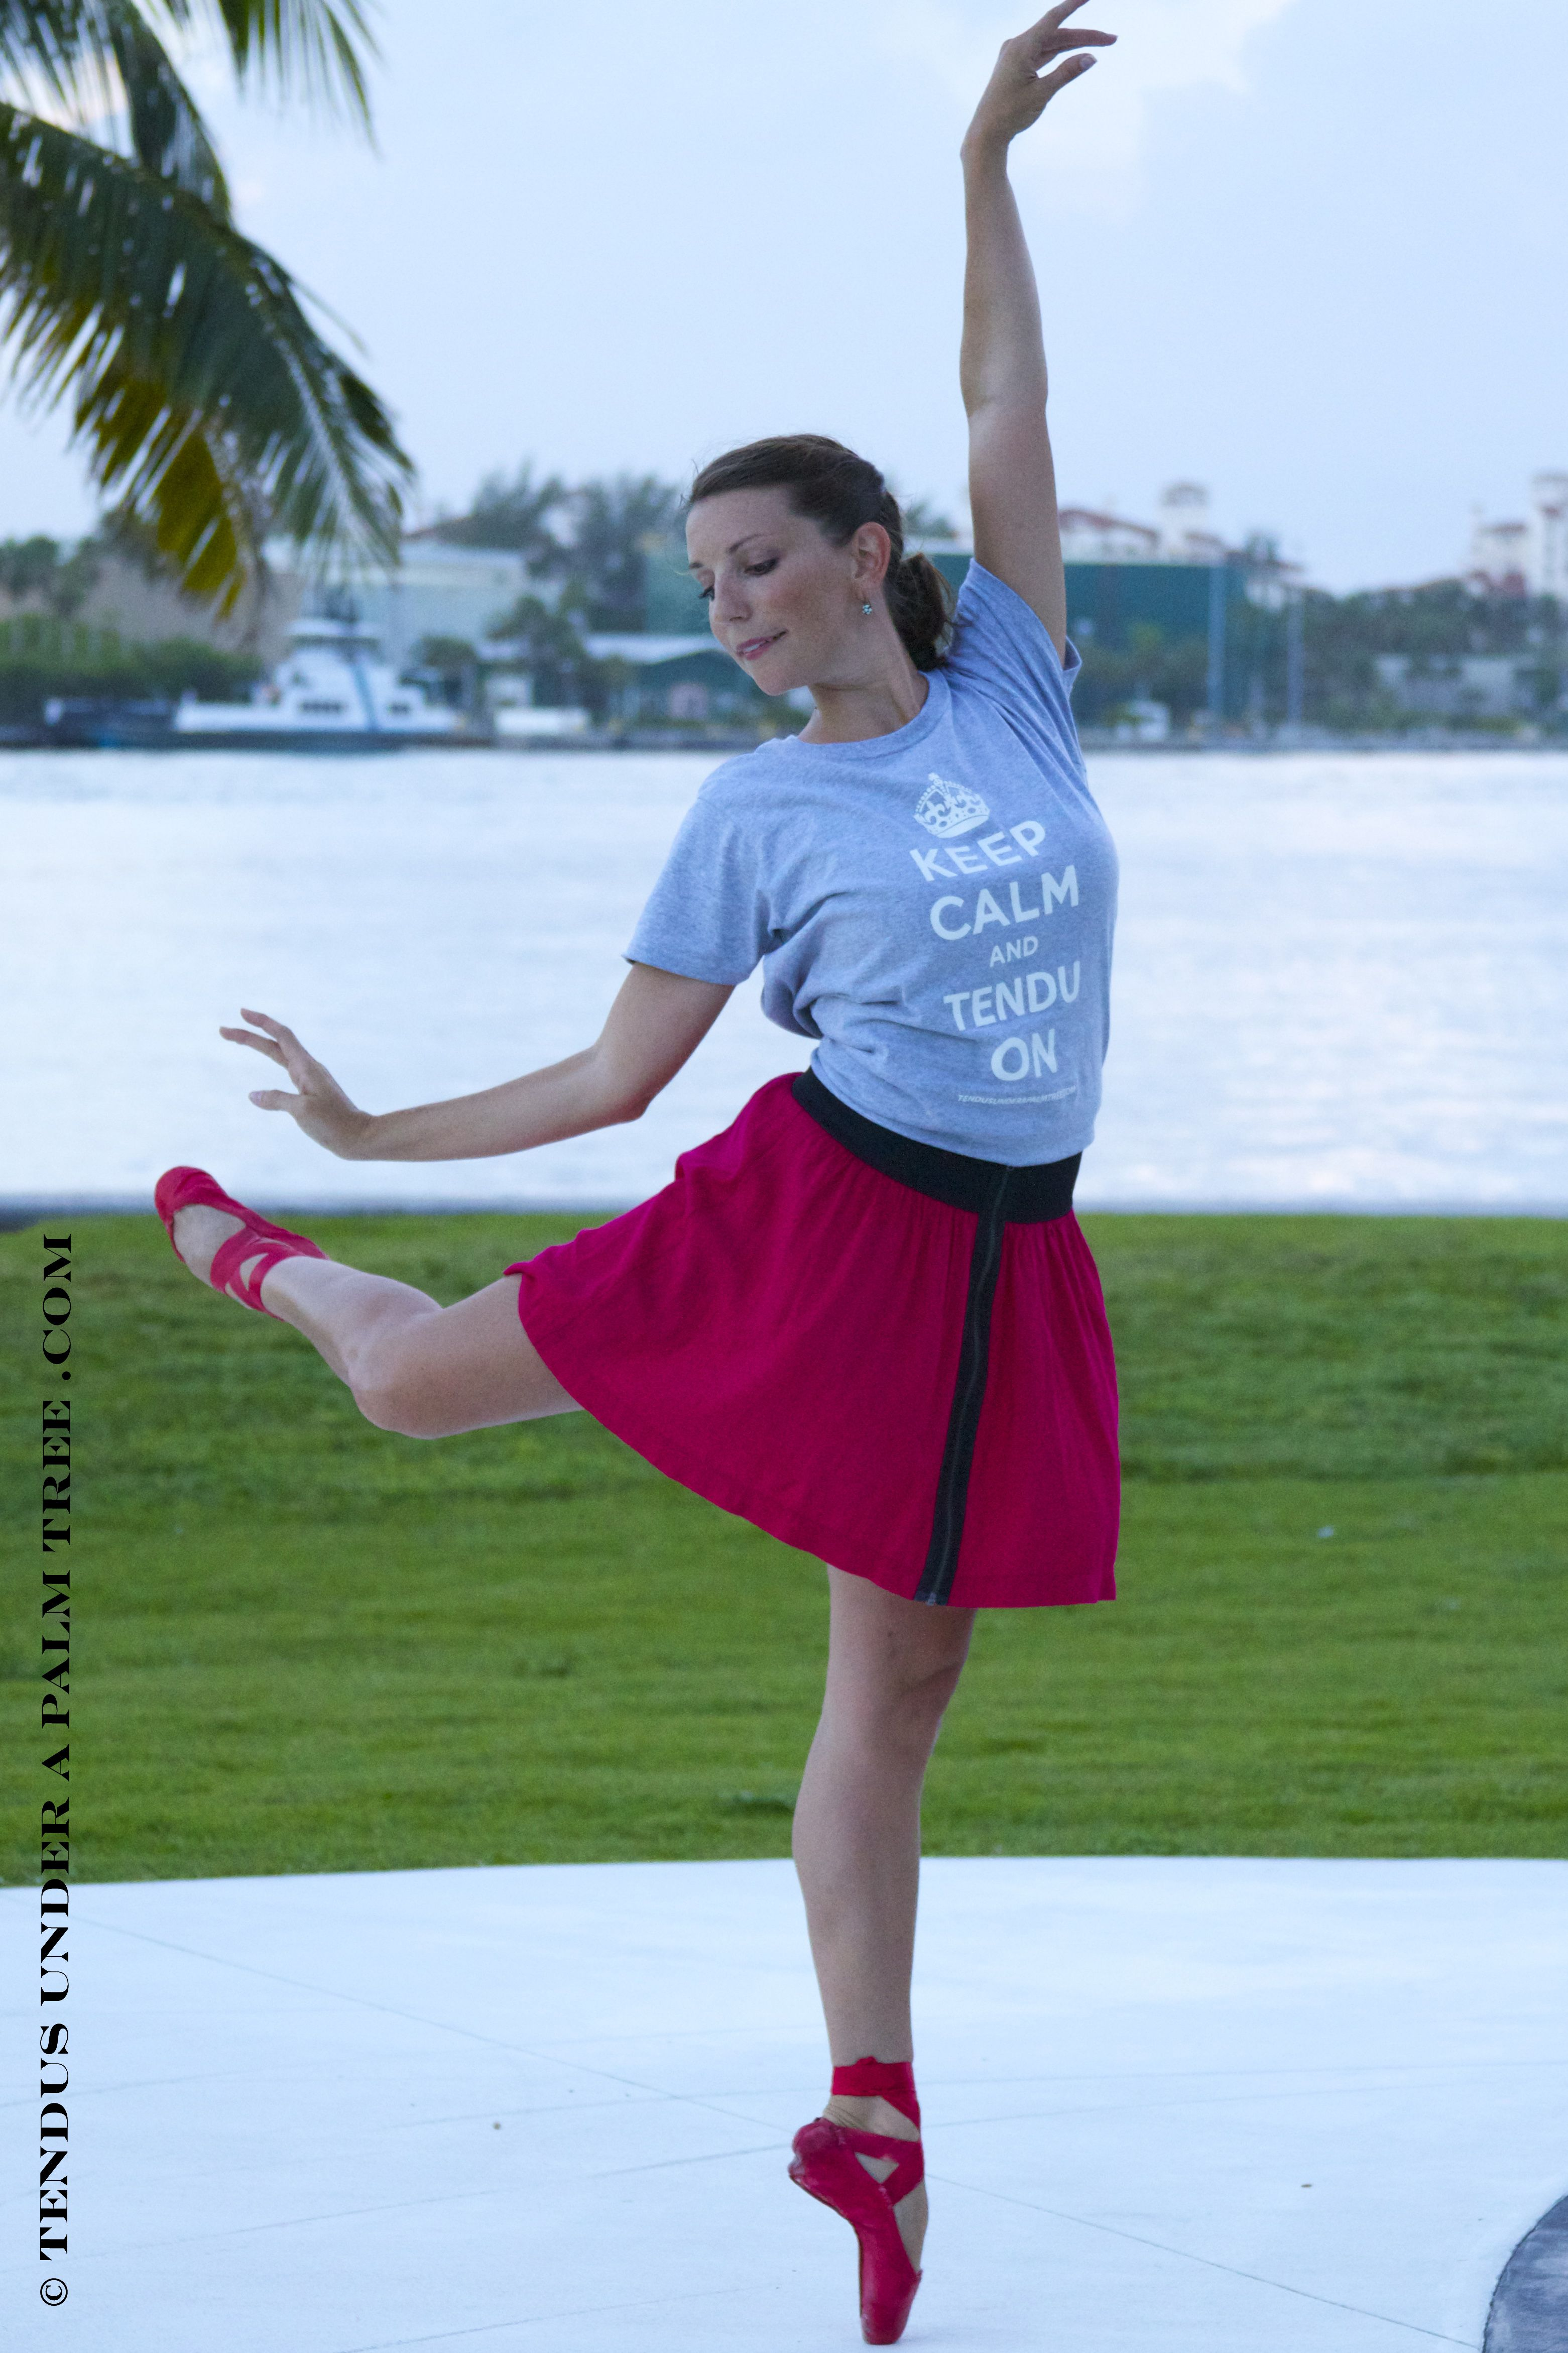 """Get your own """"Keep Calm and Tendu On"""" t-shirt for all the dance lovers in your life!    Click here to order now!  http://tendusunderapalmtree.com/keep-calm-and-tendu-on-logo-wear    Photo by Leigh-Ann Esty"""